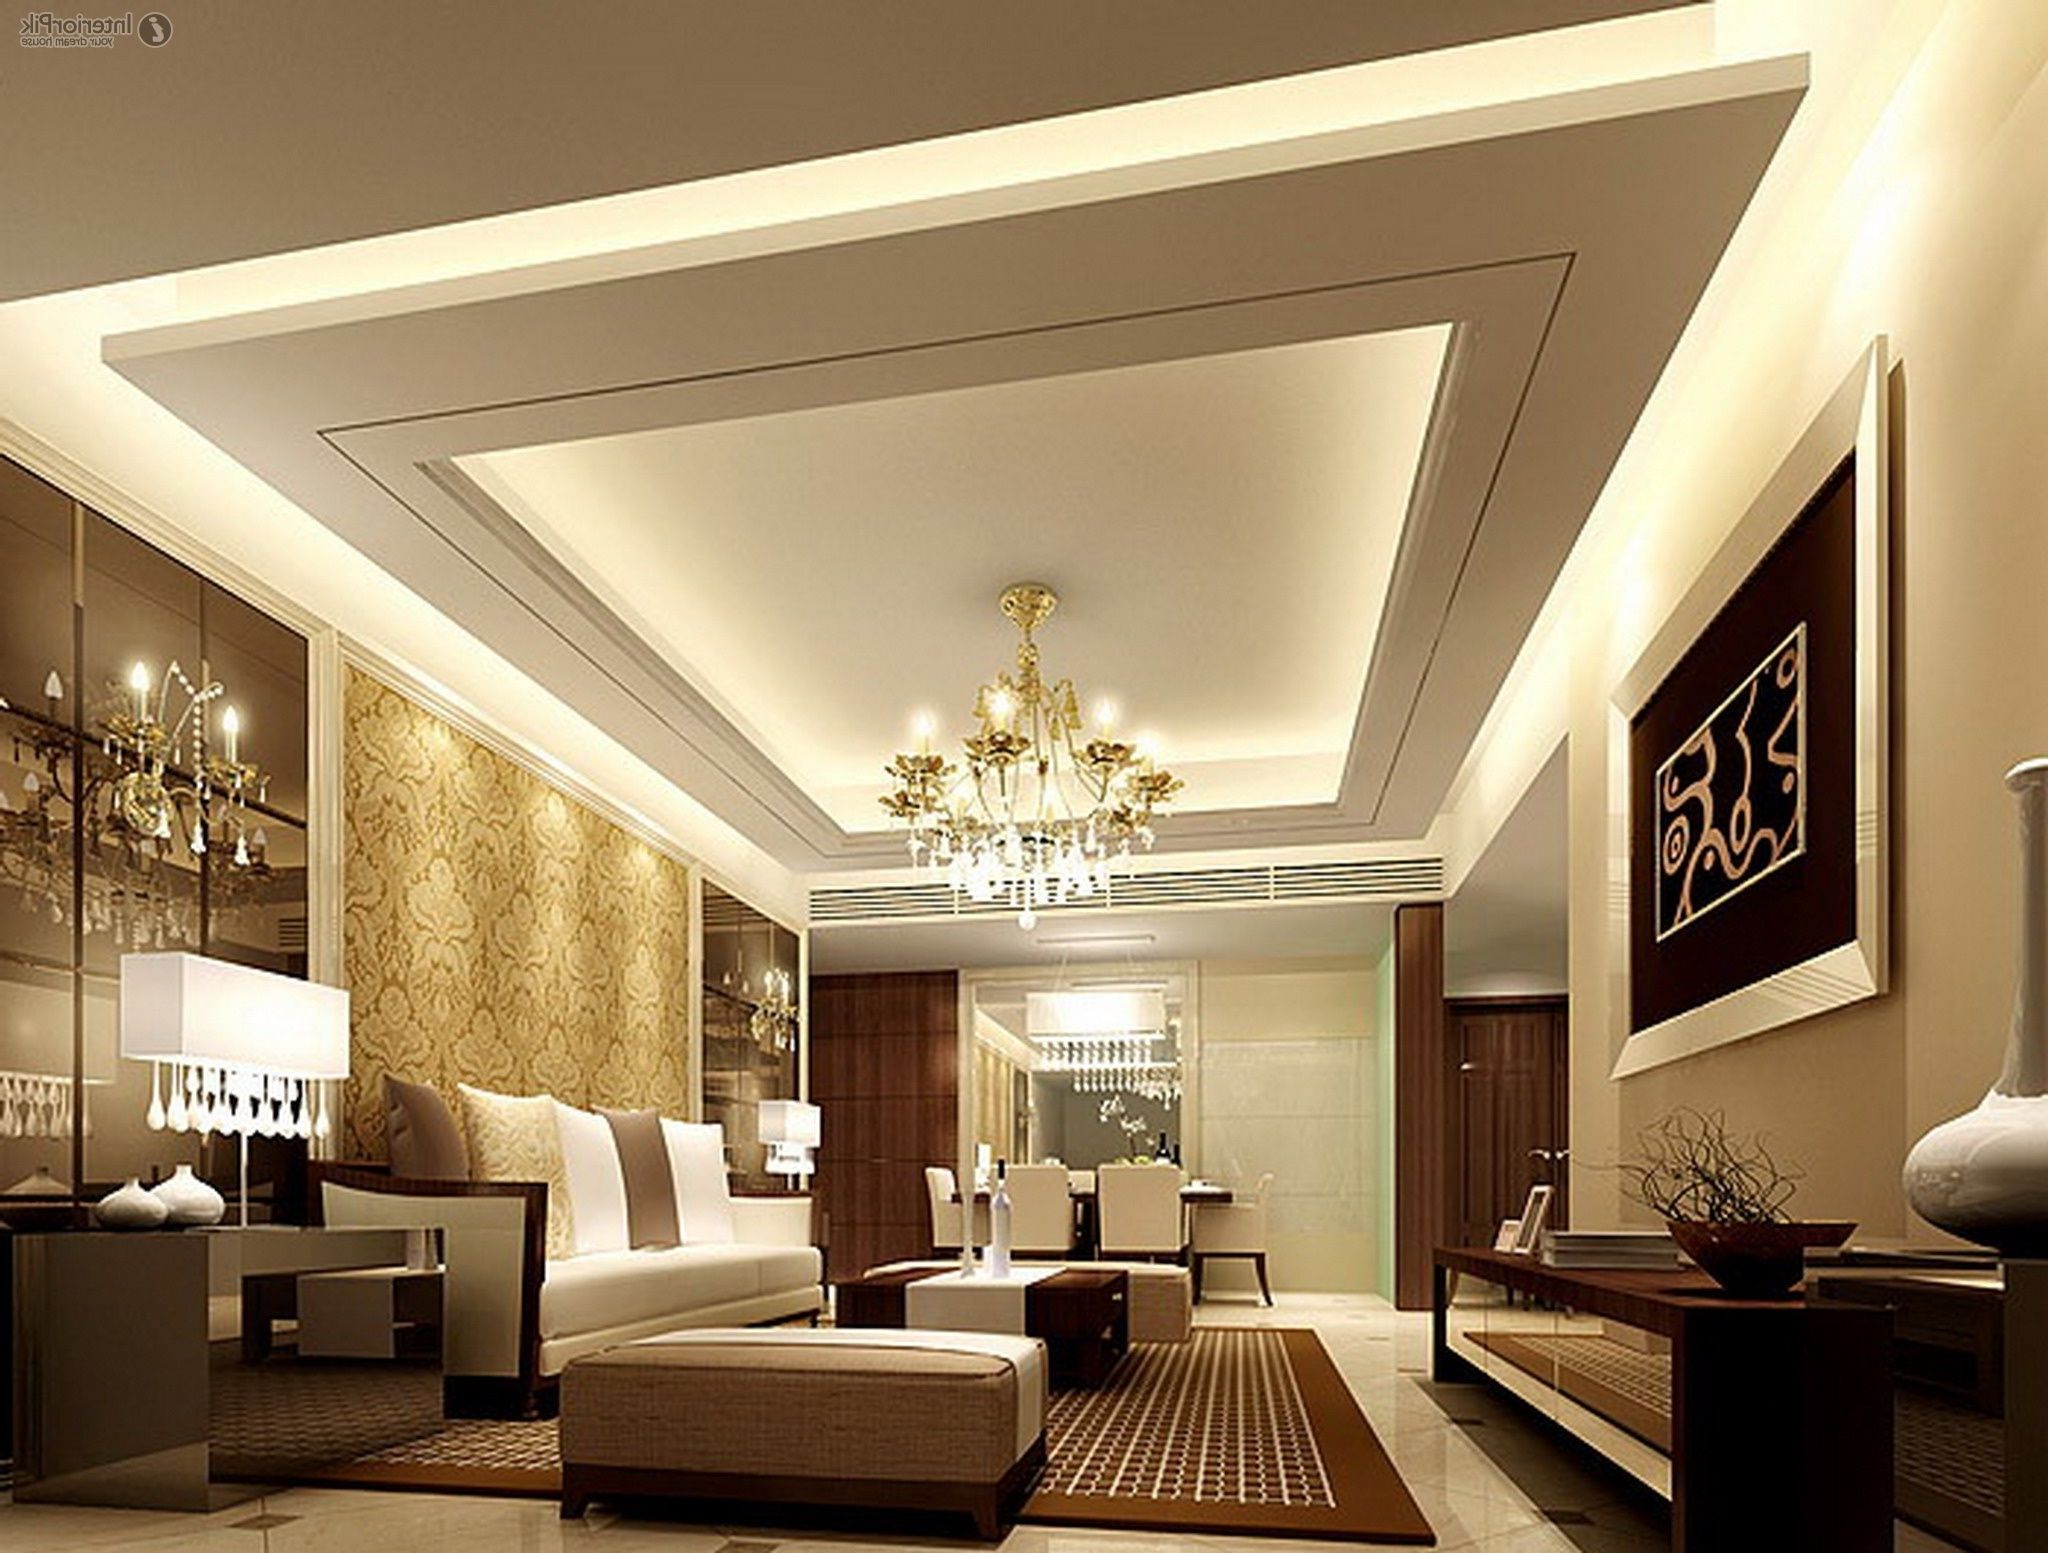 Gypsum Ceiling Design For Living Room Lighting Home Decorate Best Amusing Best Designed Living Rooms Design Ideas